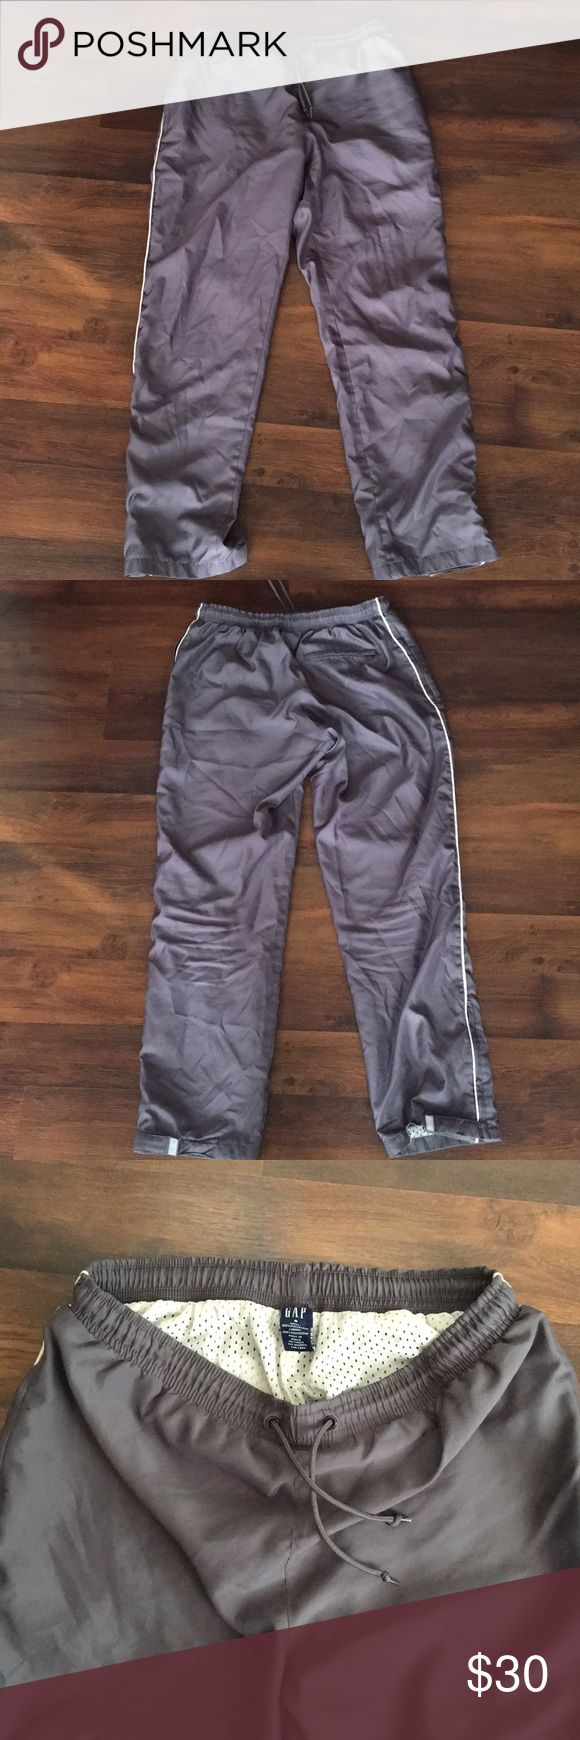 "GAP women's active pants GAP women's active wind pants. The outer shell is very soft and doesn't make the loud ""swish"" and crinkle sound of the old school wind pants.  Inner mesh lining, elastic waist band with drawstring, two side front zip pockets and one zip pocket on the back. The leg bottoms have zippers and adjustable Velcro.  A few tiny dark spots near right side pocket. 2/25/18 GAP Pants Track Pants & Joggers"